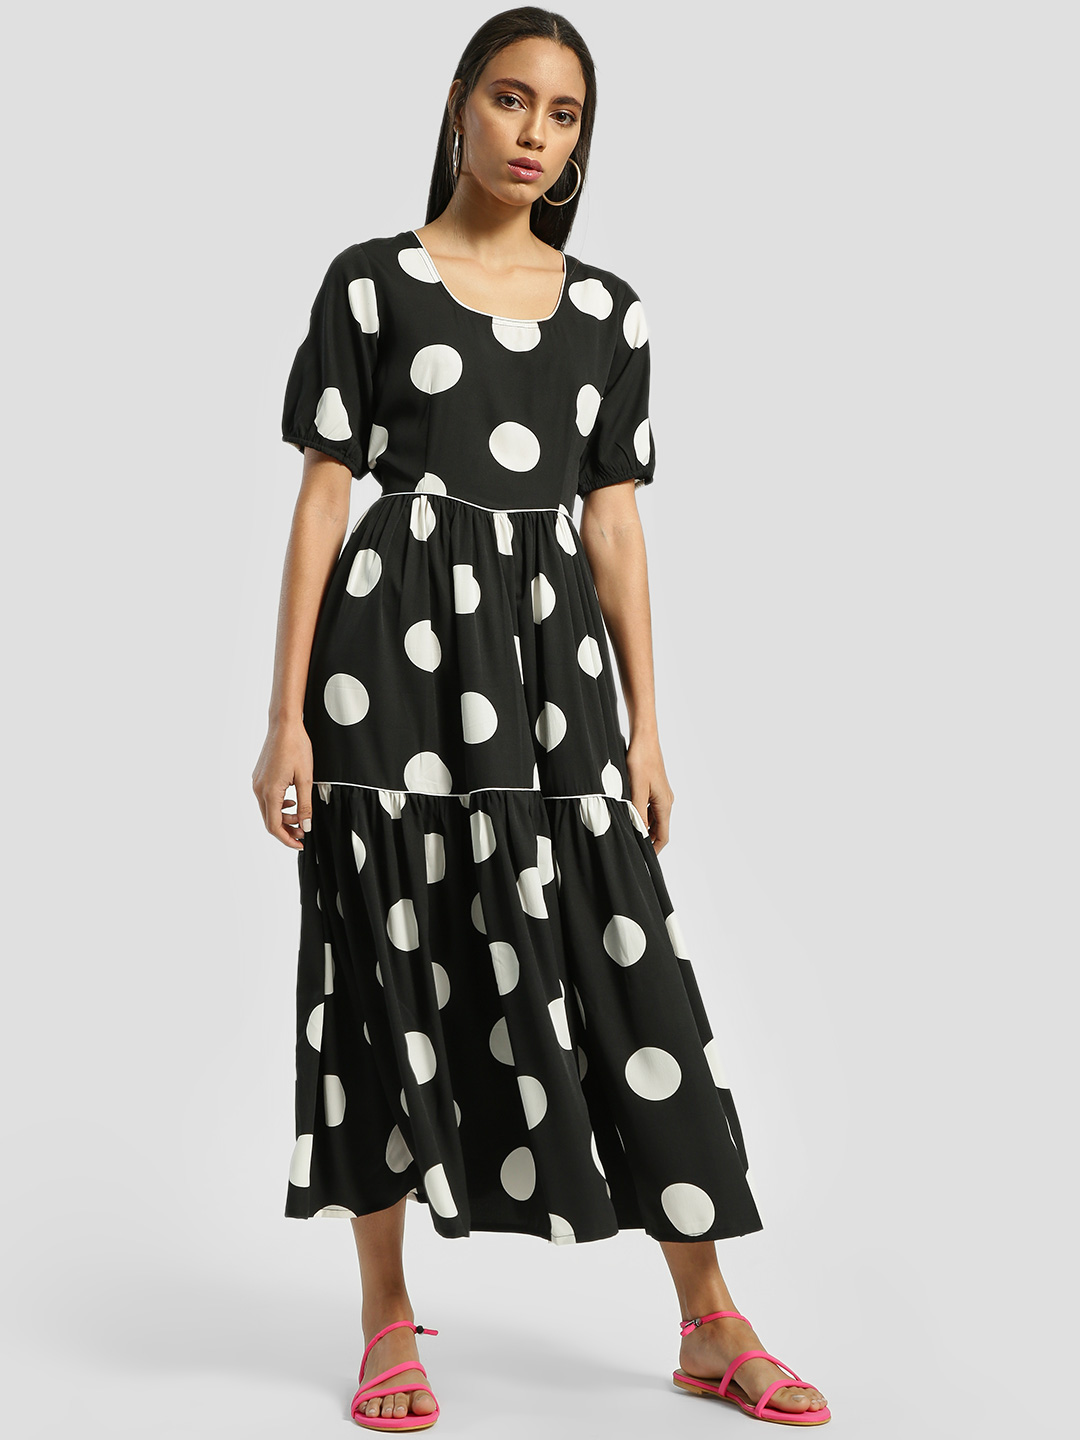 Closet Drama Multi Polka Dot Print Midi Dress 1